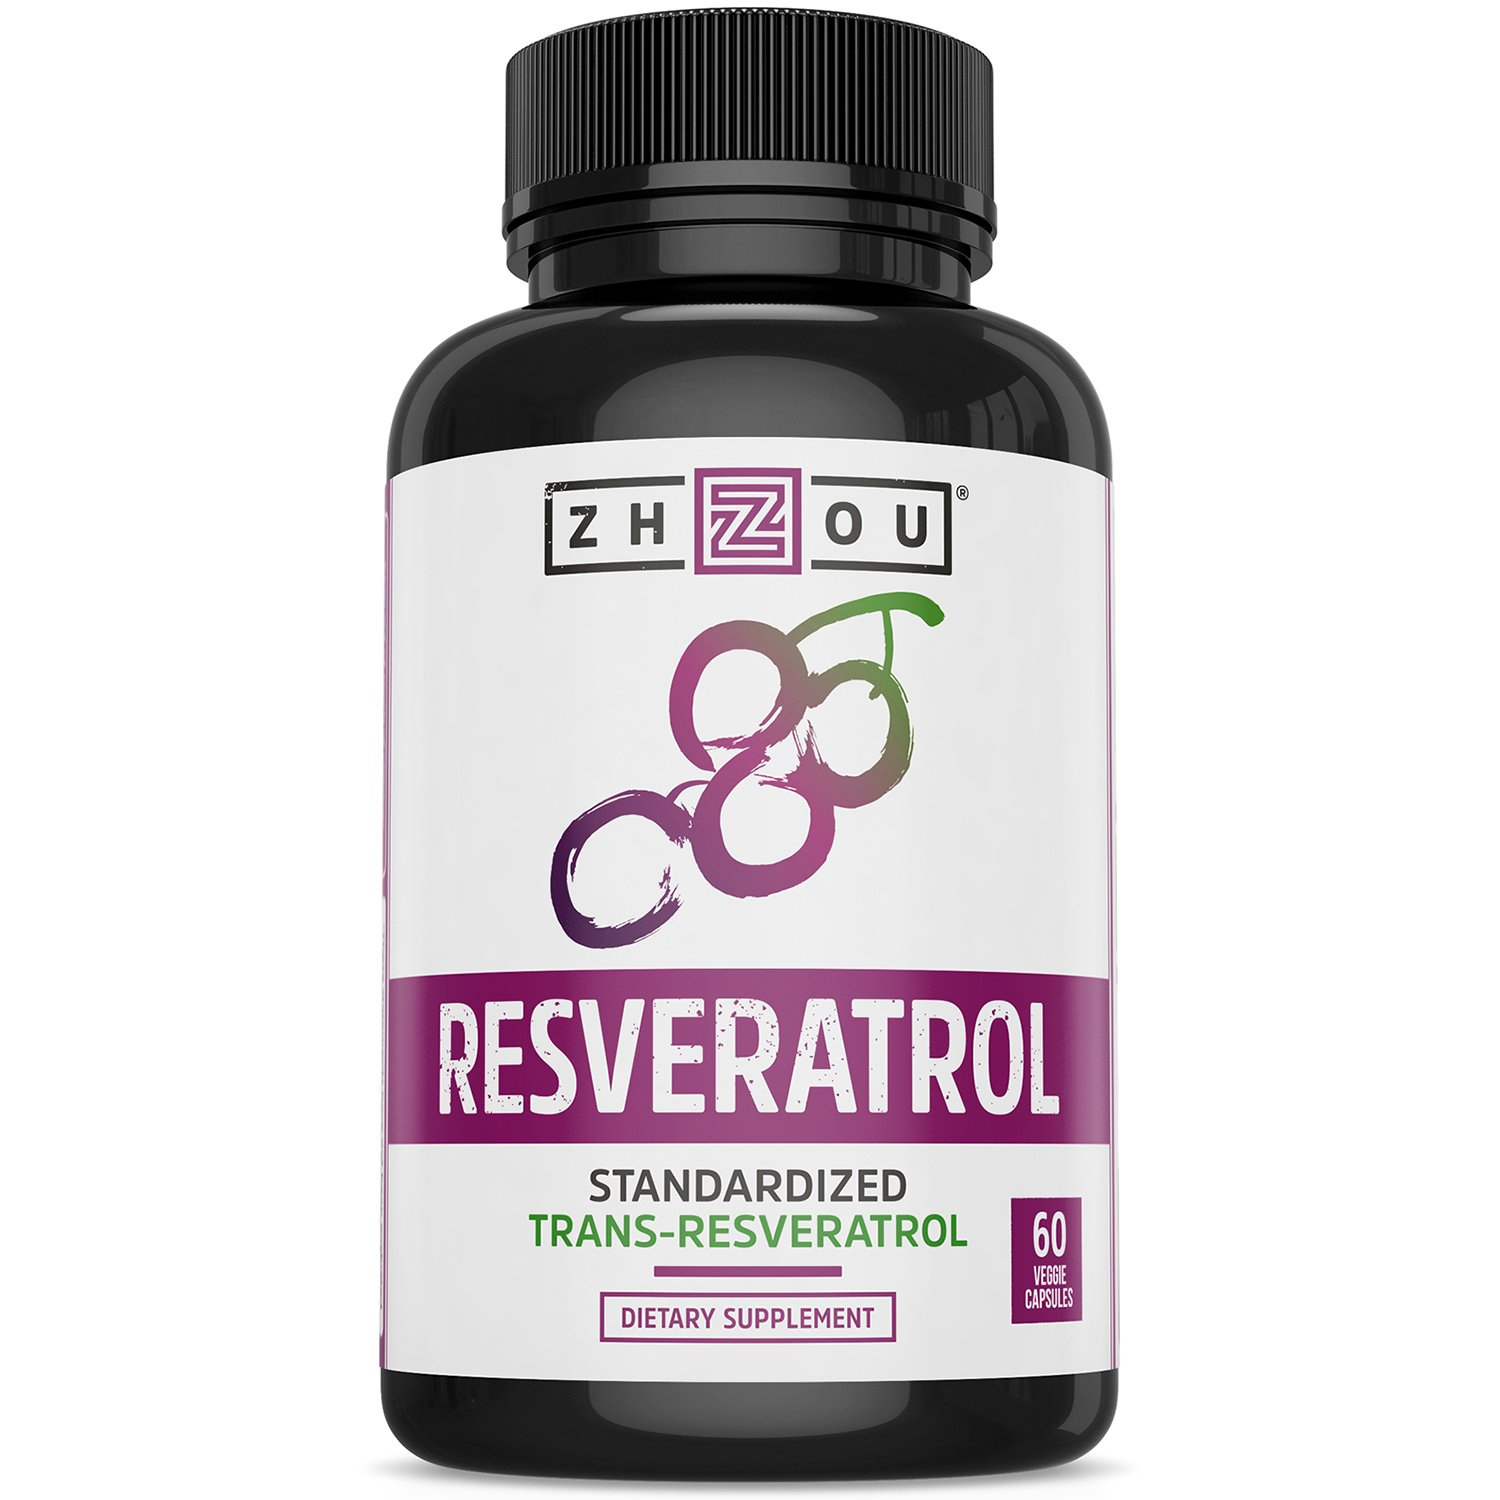 Resveratrol Supplement for Healthy Aging, Immune System & Heart Health Support - Standardized to 50% Trans Resveratrol - Powerful Antioxidant Benefits - 60 Vegetarian Capsules by Zhou Nutrition